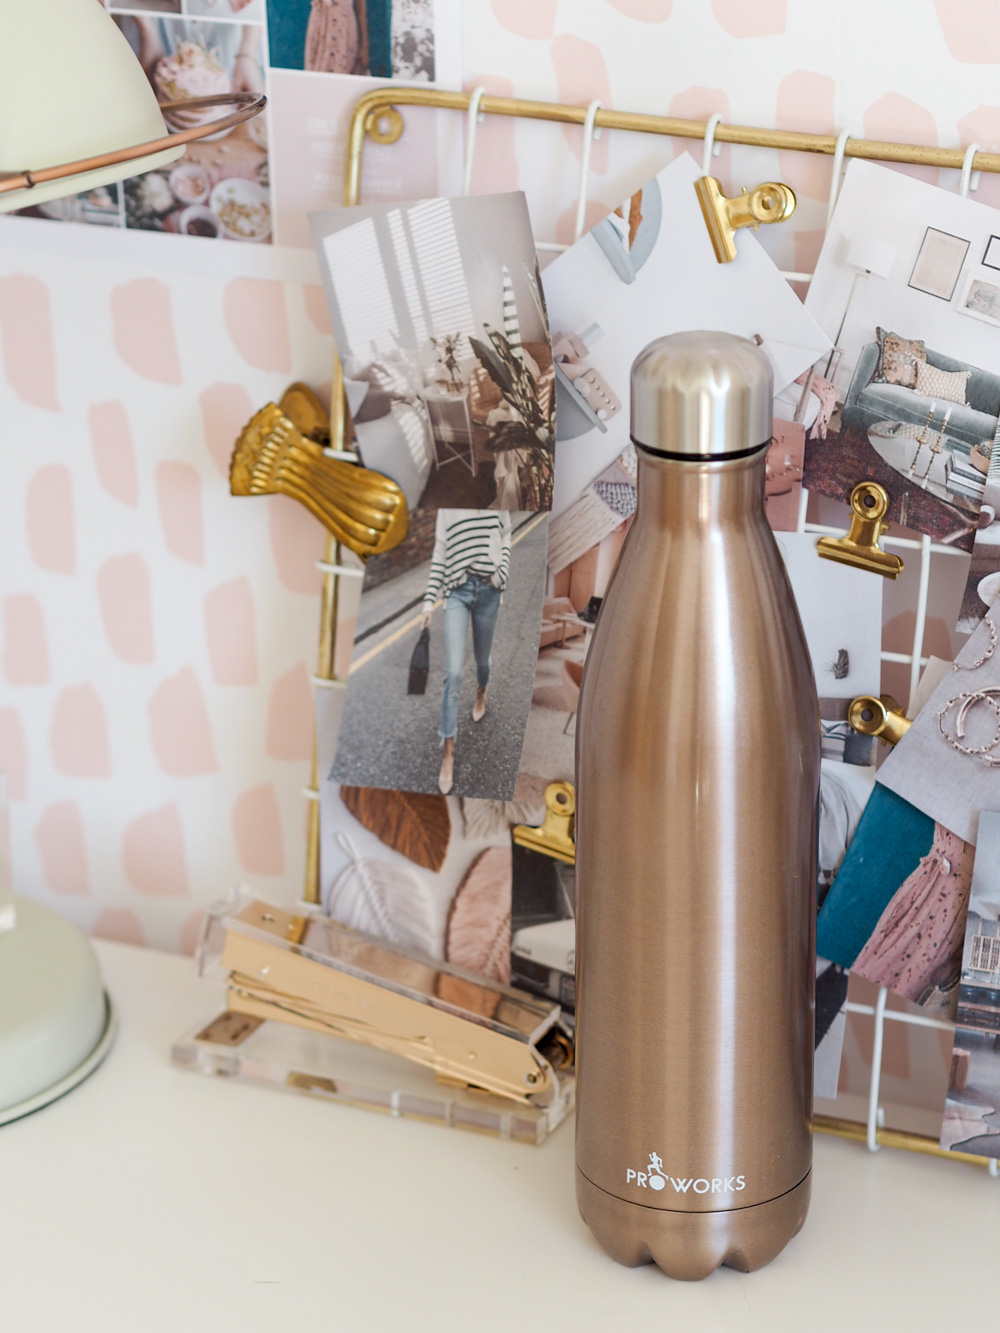 Proworks metal water bottle in gold